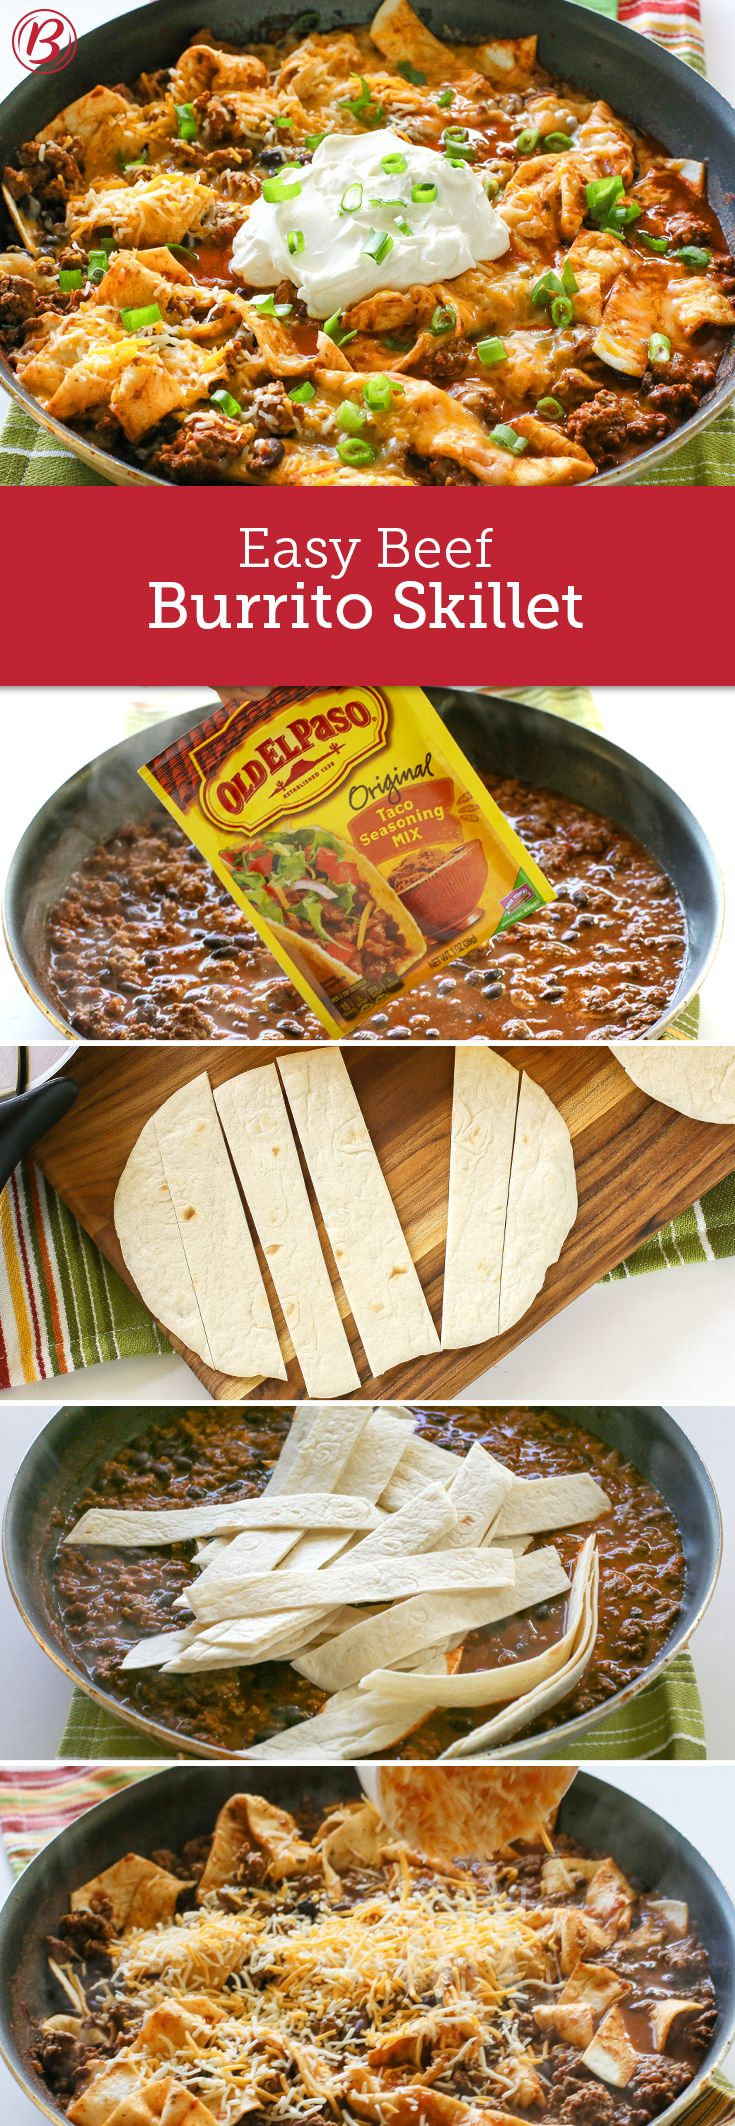 If you're on the hunt for a new easy dinner that totally delivers on flavor, this Easy Beef Burrito Skillet is your ticket. With just 20 minutes prep and 20 minutes cook time, this is a speedy spin on classic Mexican chilaquiles.